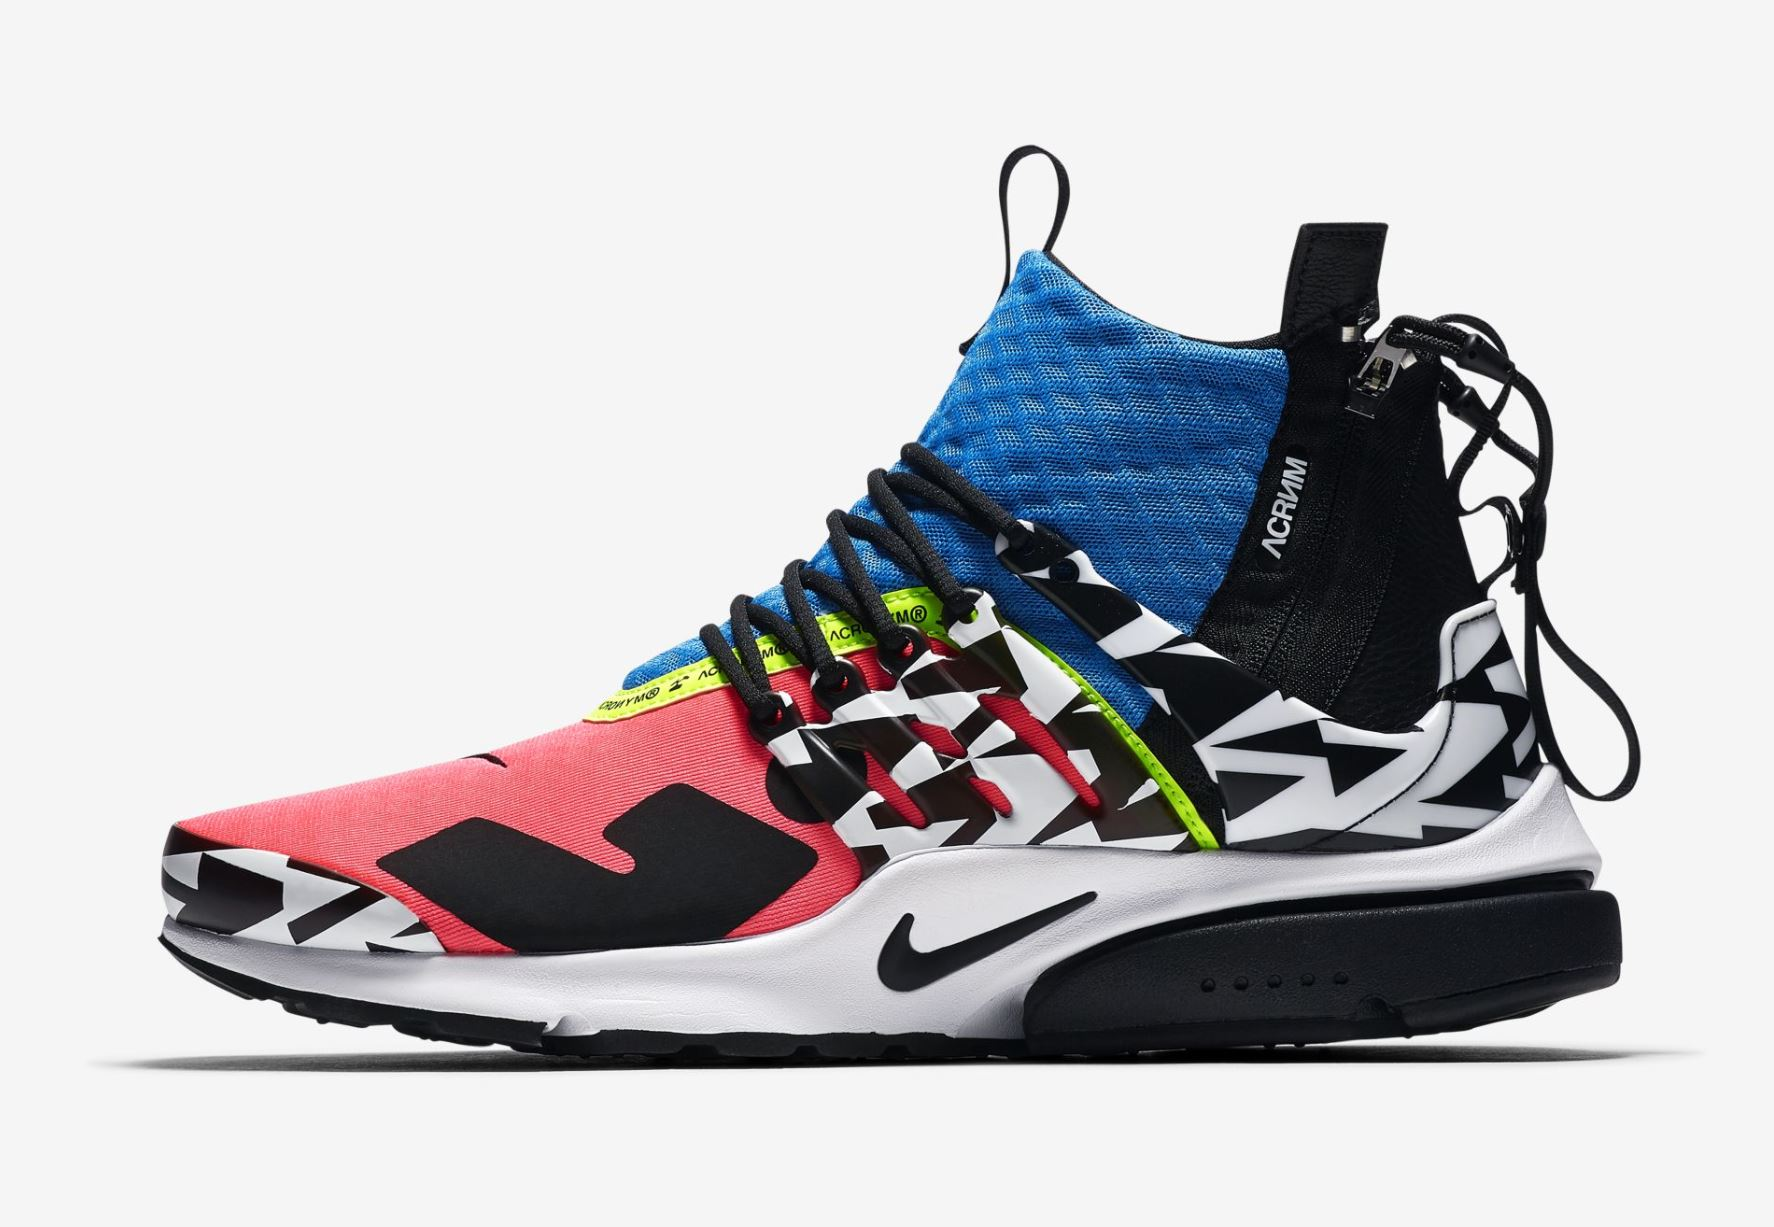 Official Look at a New ACRONYM x Nike Presto Mid for 2018 ...